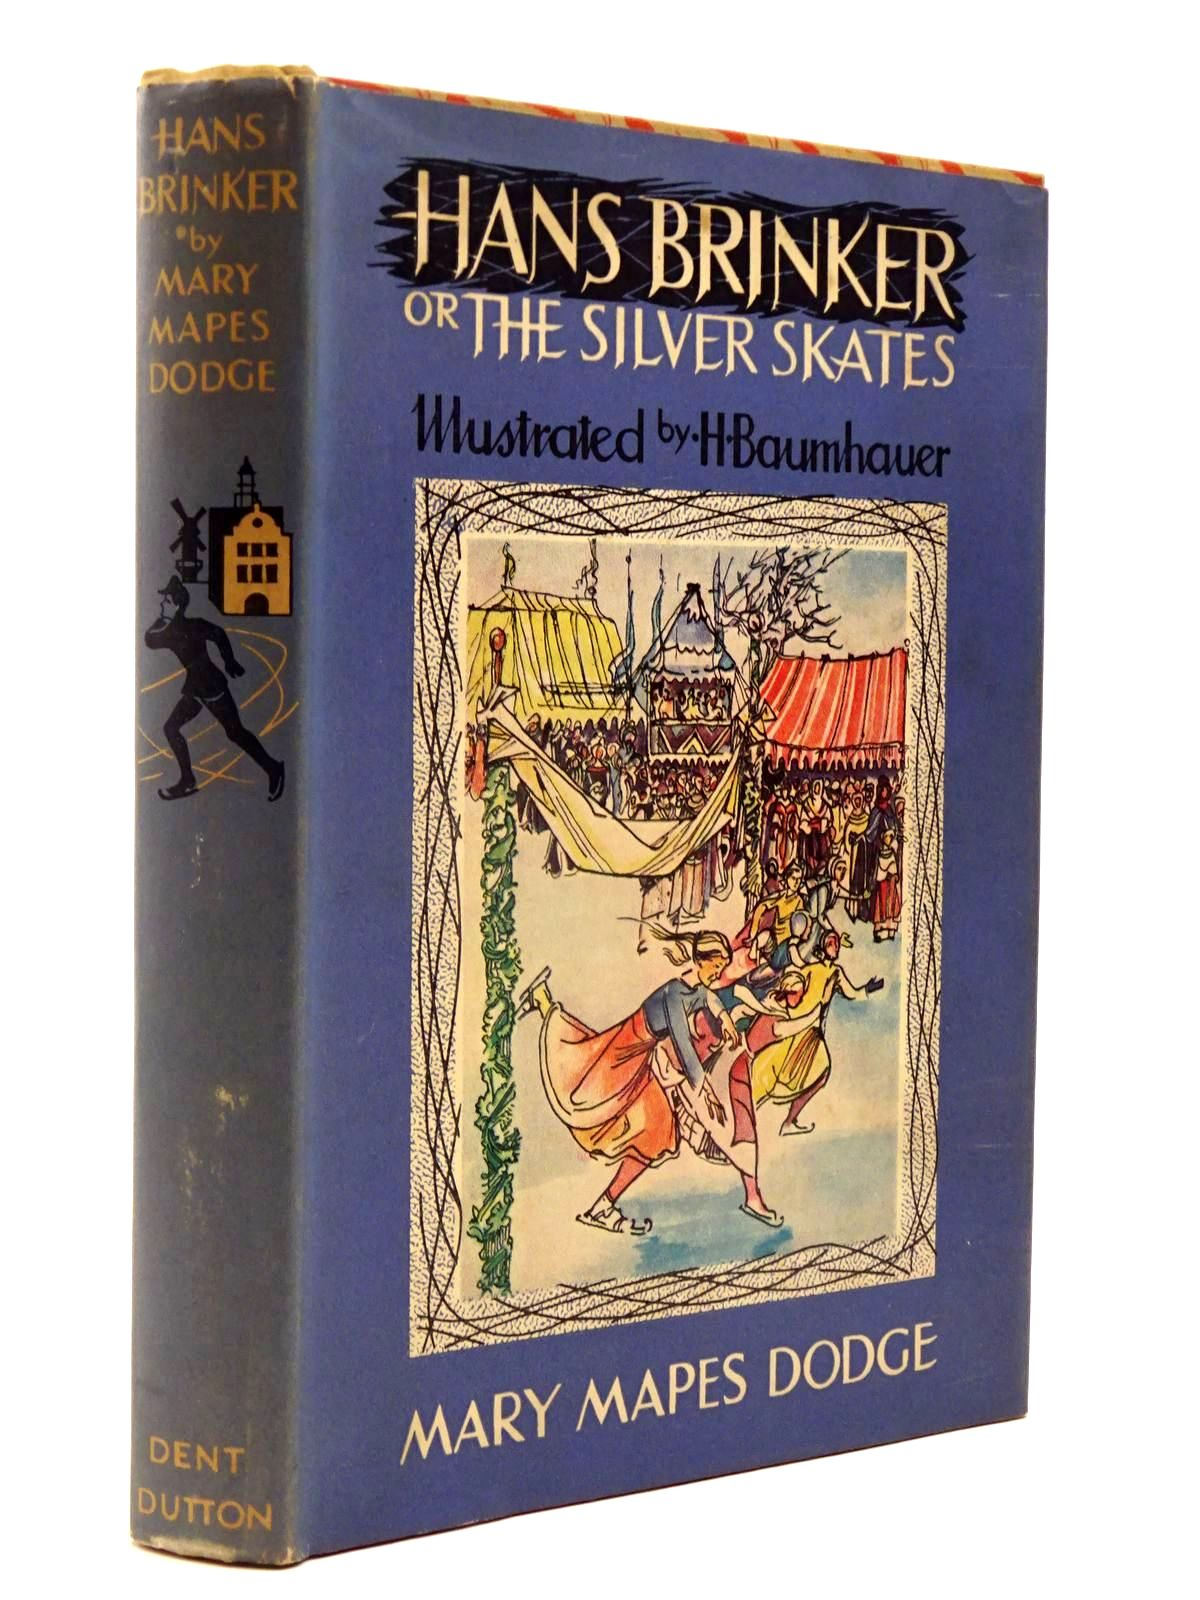 Photo of HANS BRINKER OR THE SILVER SKATES written by Dodge, Mary Mapes illustrated by Baumhauer, Hans published by J.M. Dent & Sons Ltd. (STOCK CODE: 2130400)  for sale by Stella & Rose's Books